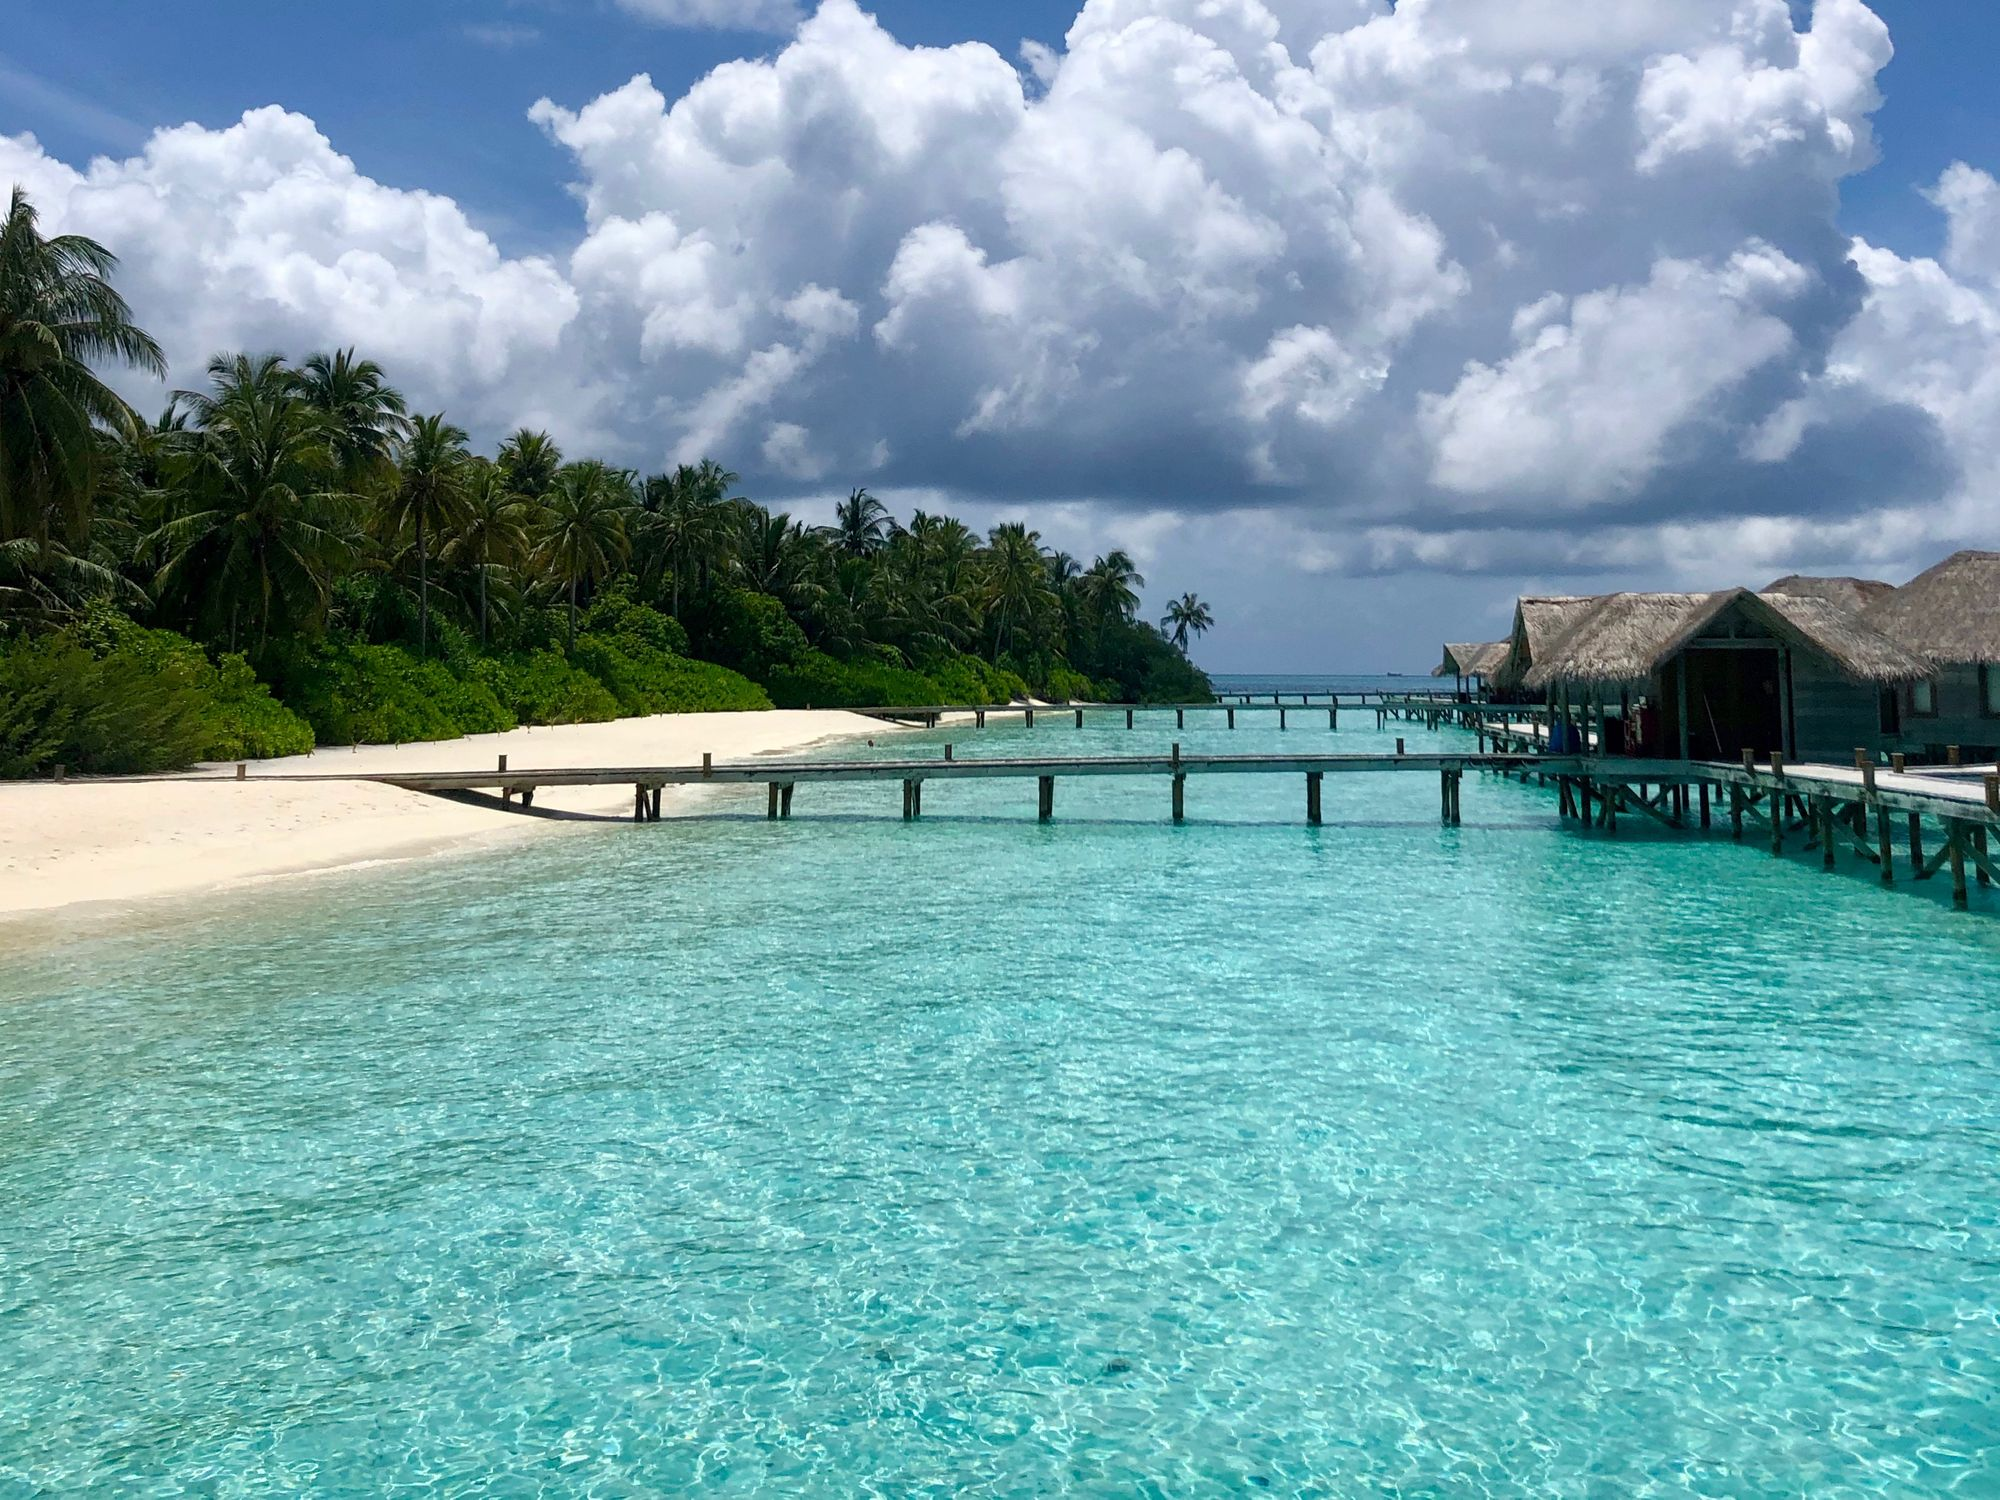 How This Resort In The Maldives Stays True To Its Sustainability Commitments